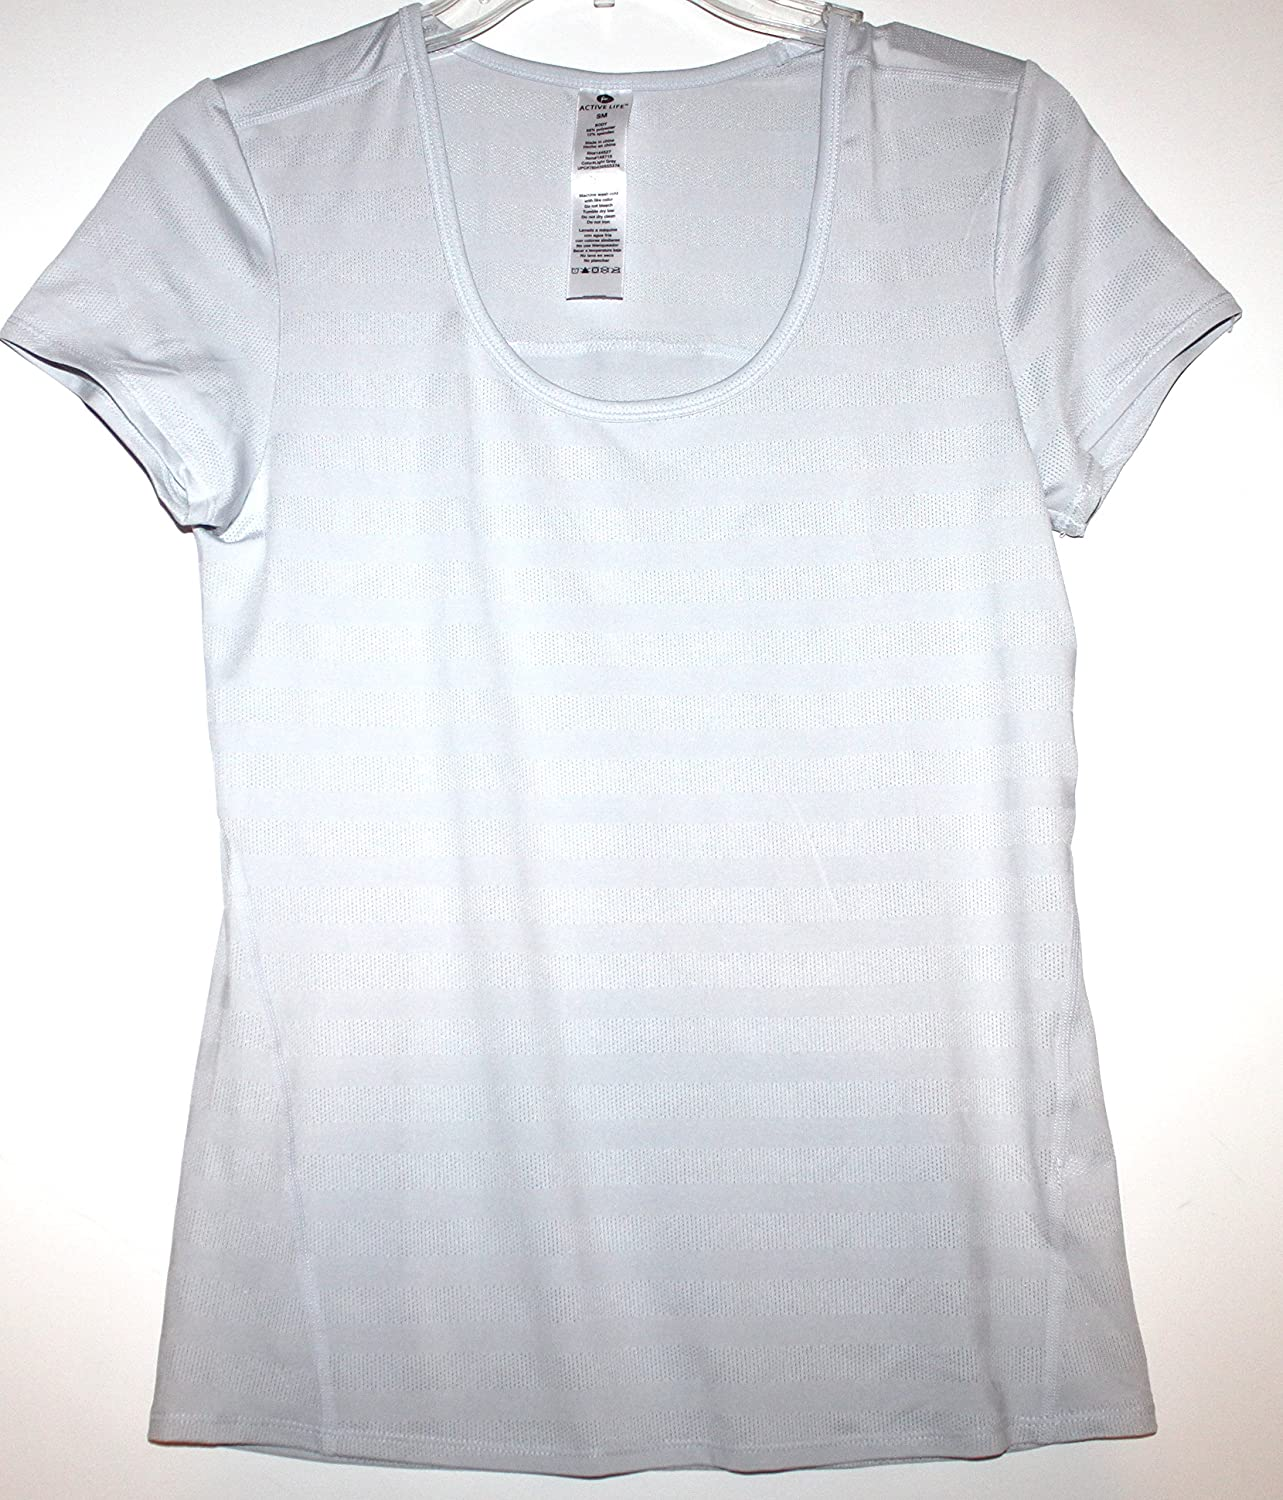 Active Life Women's Scooped Neck Training T Top with Tonal Stripes